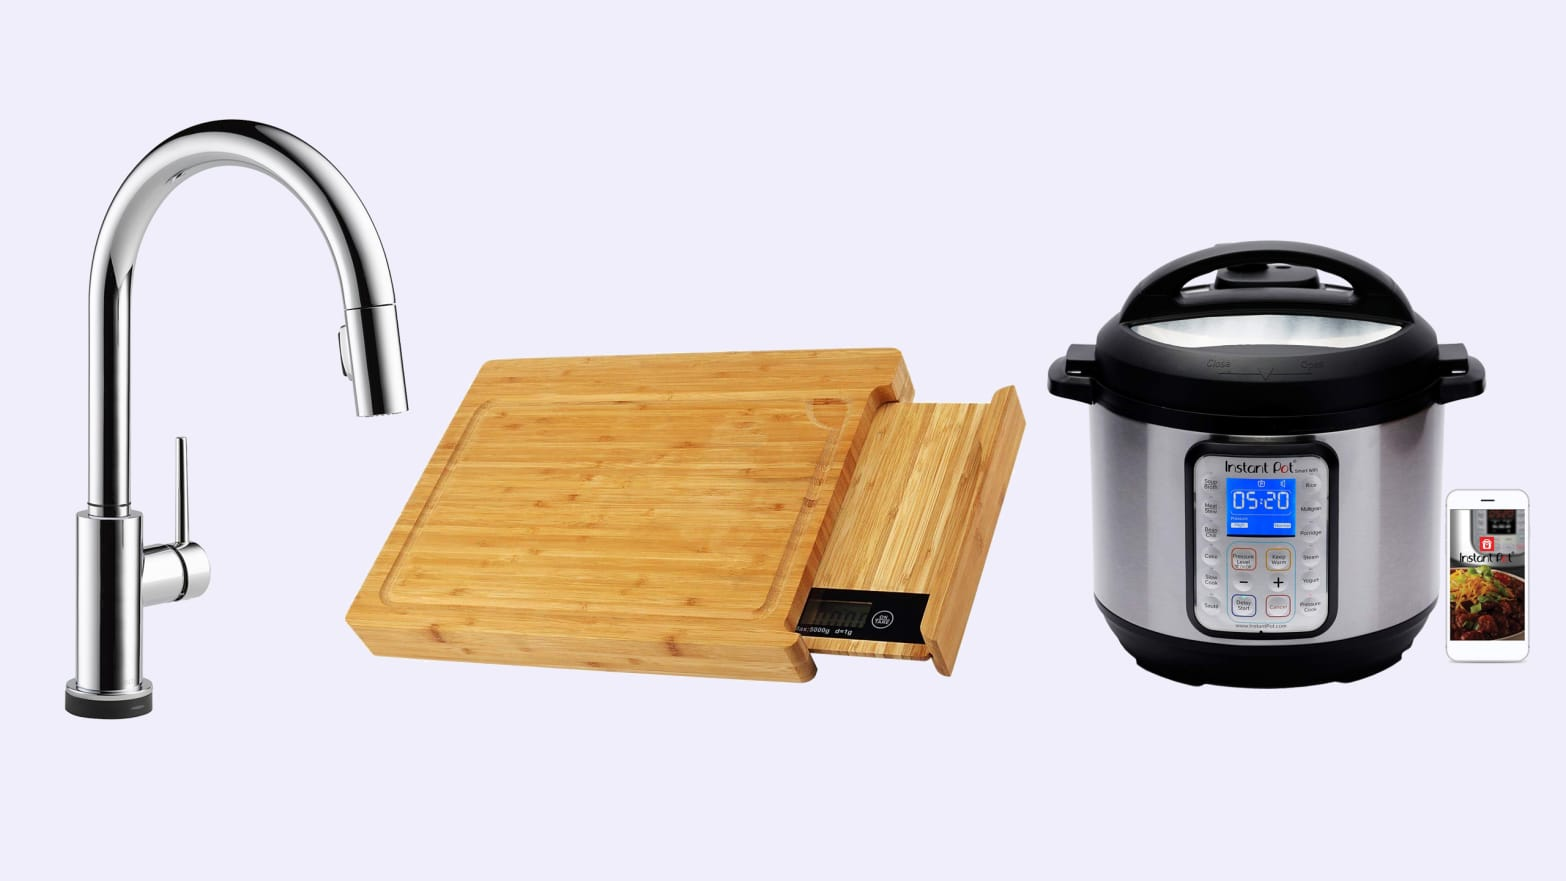 WiFi Instant Pot, Smart Faucets, Microwaves, and More Kitchen Gadgets